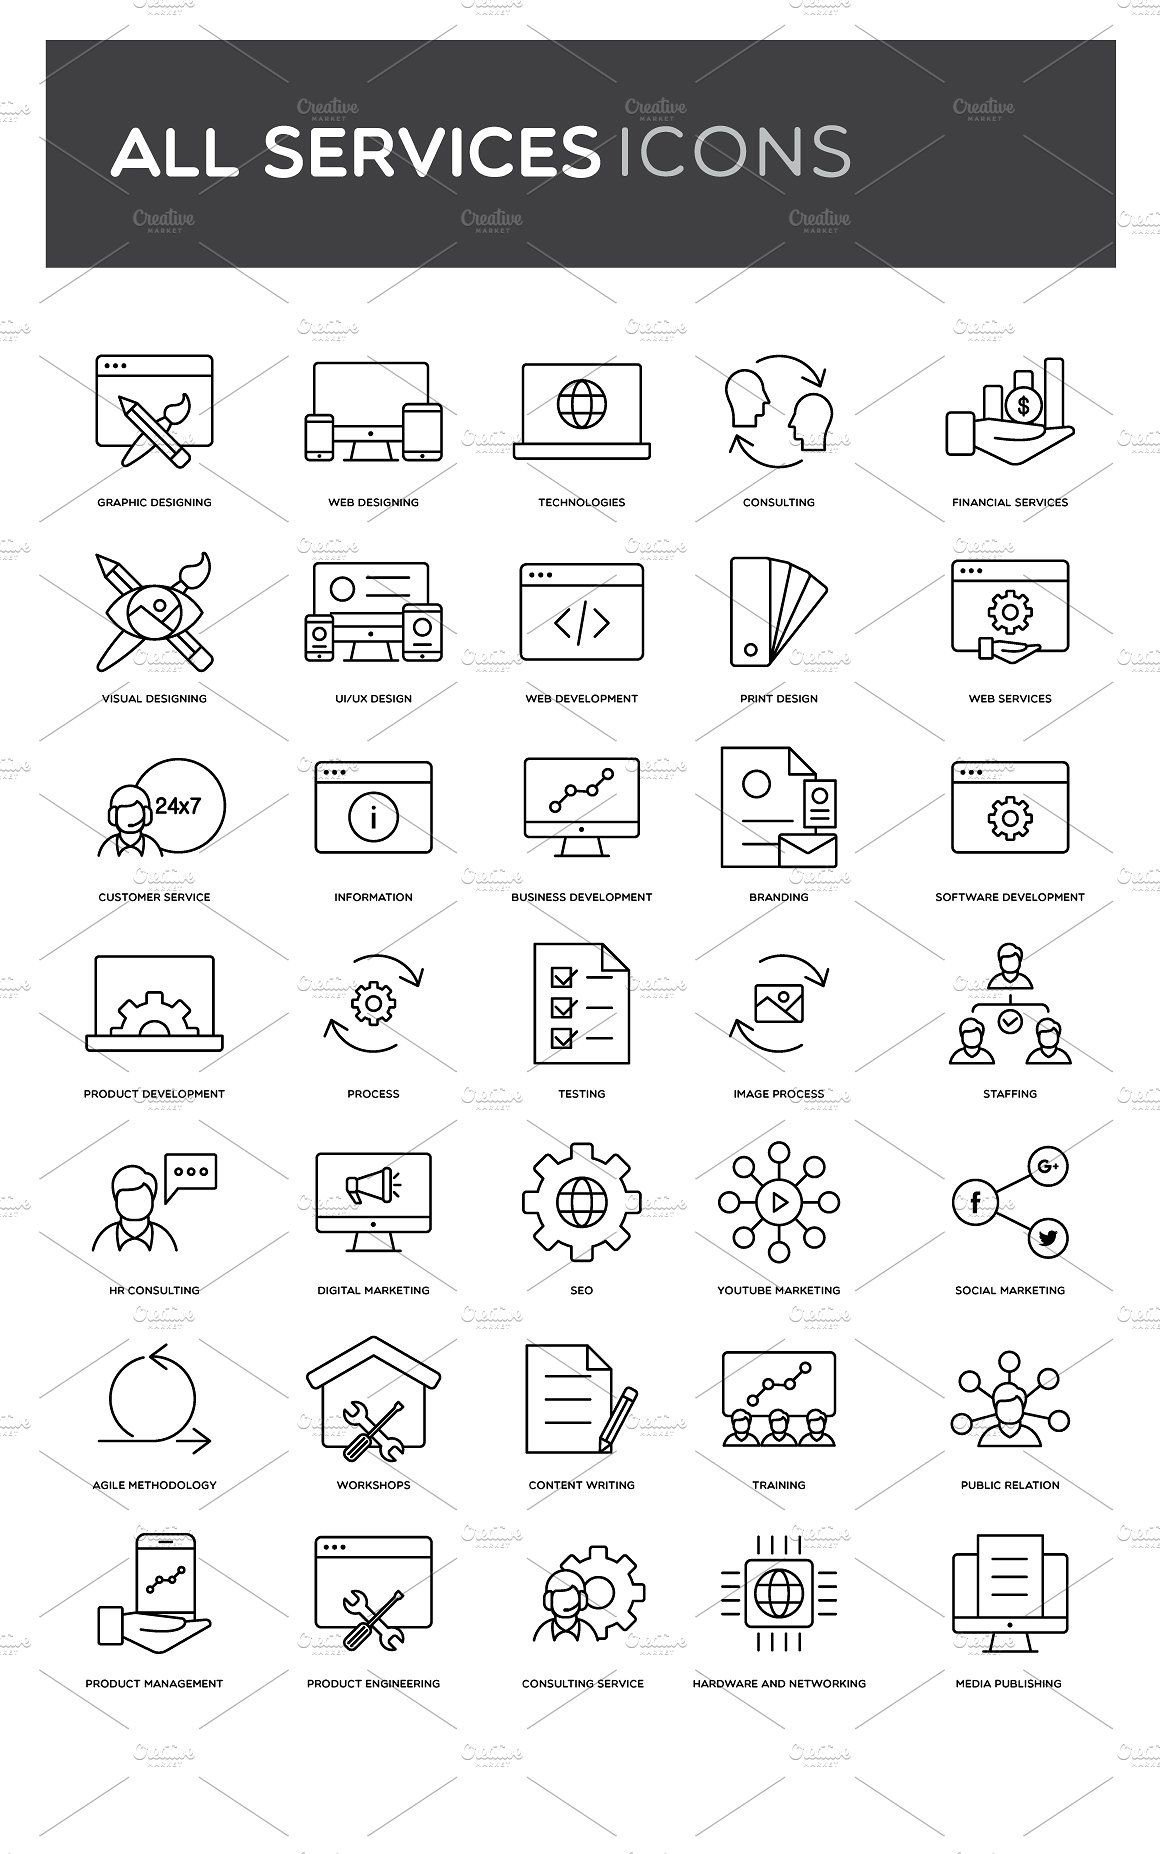 Most Essential Services Icons Web Development Software Icon Graphic Design Branding